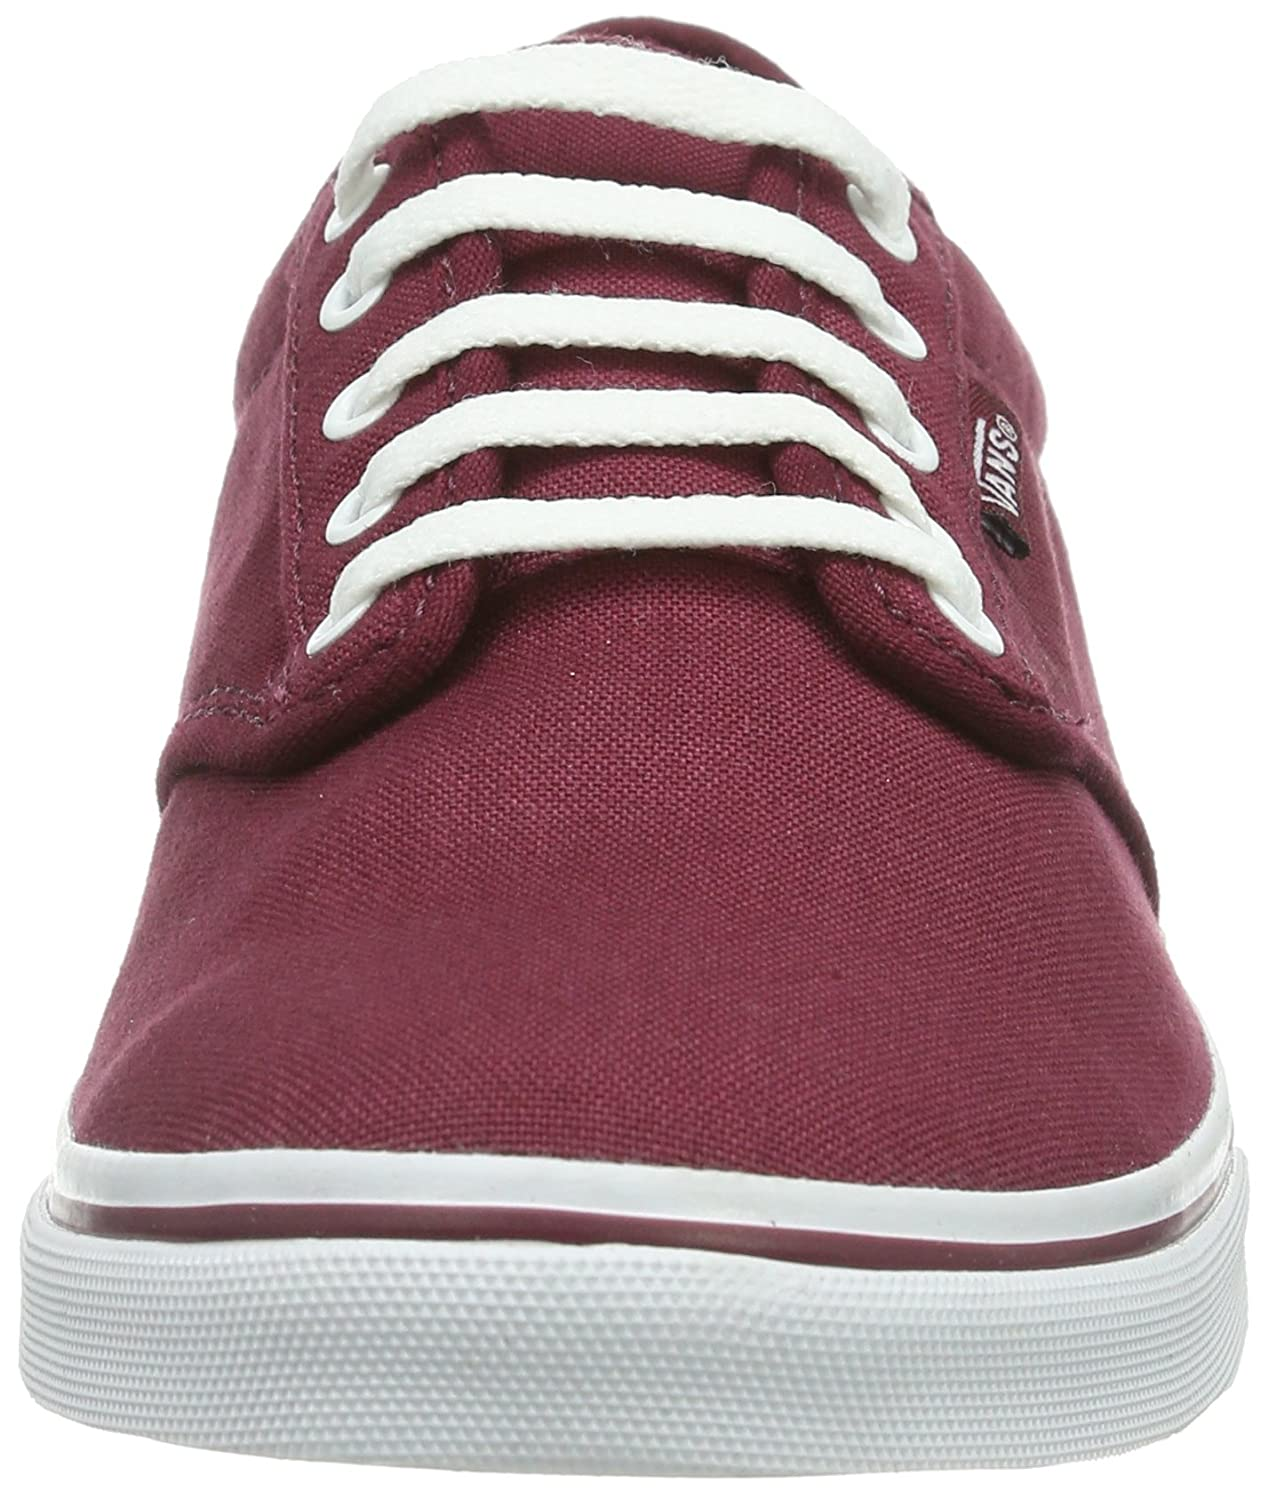 Vans Damen Atwood Low Canvas Sneakers - lccs.org.sg